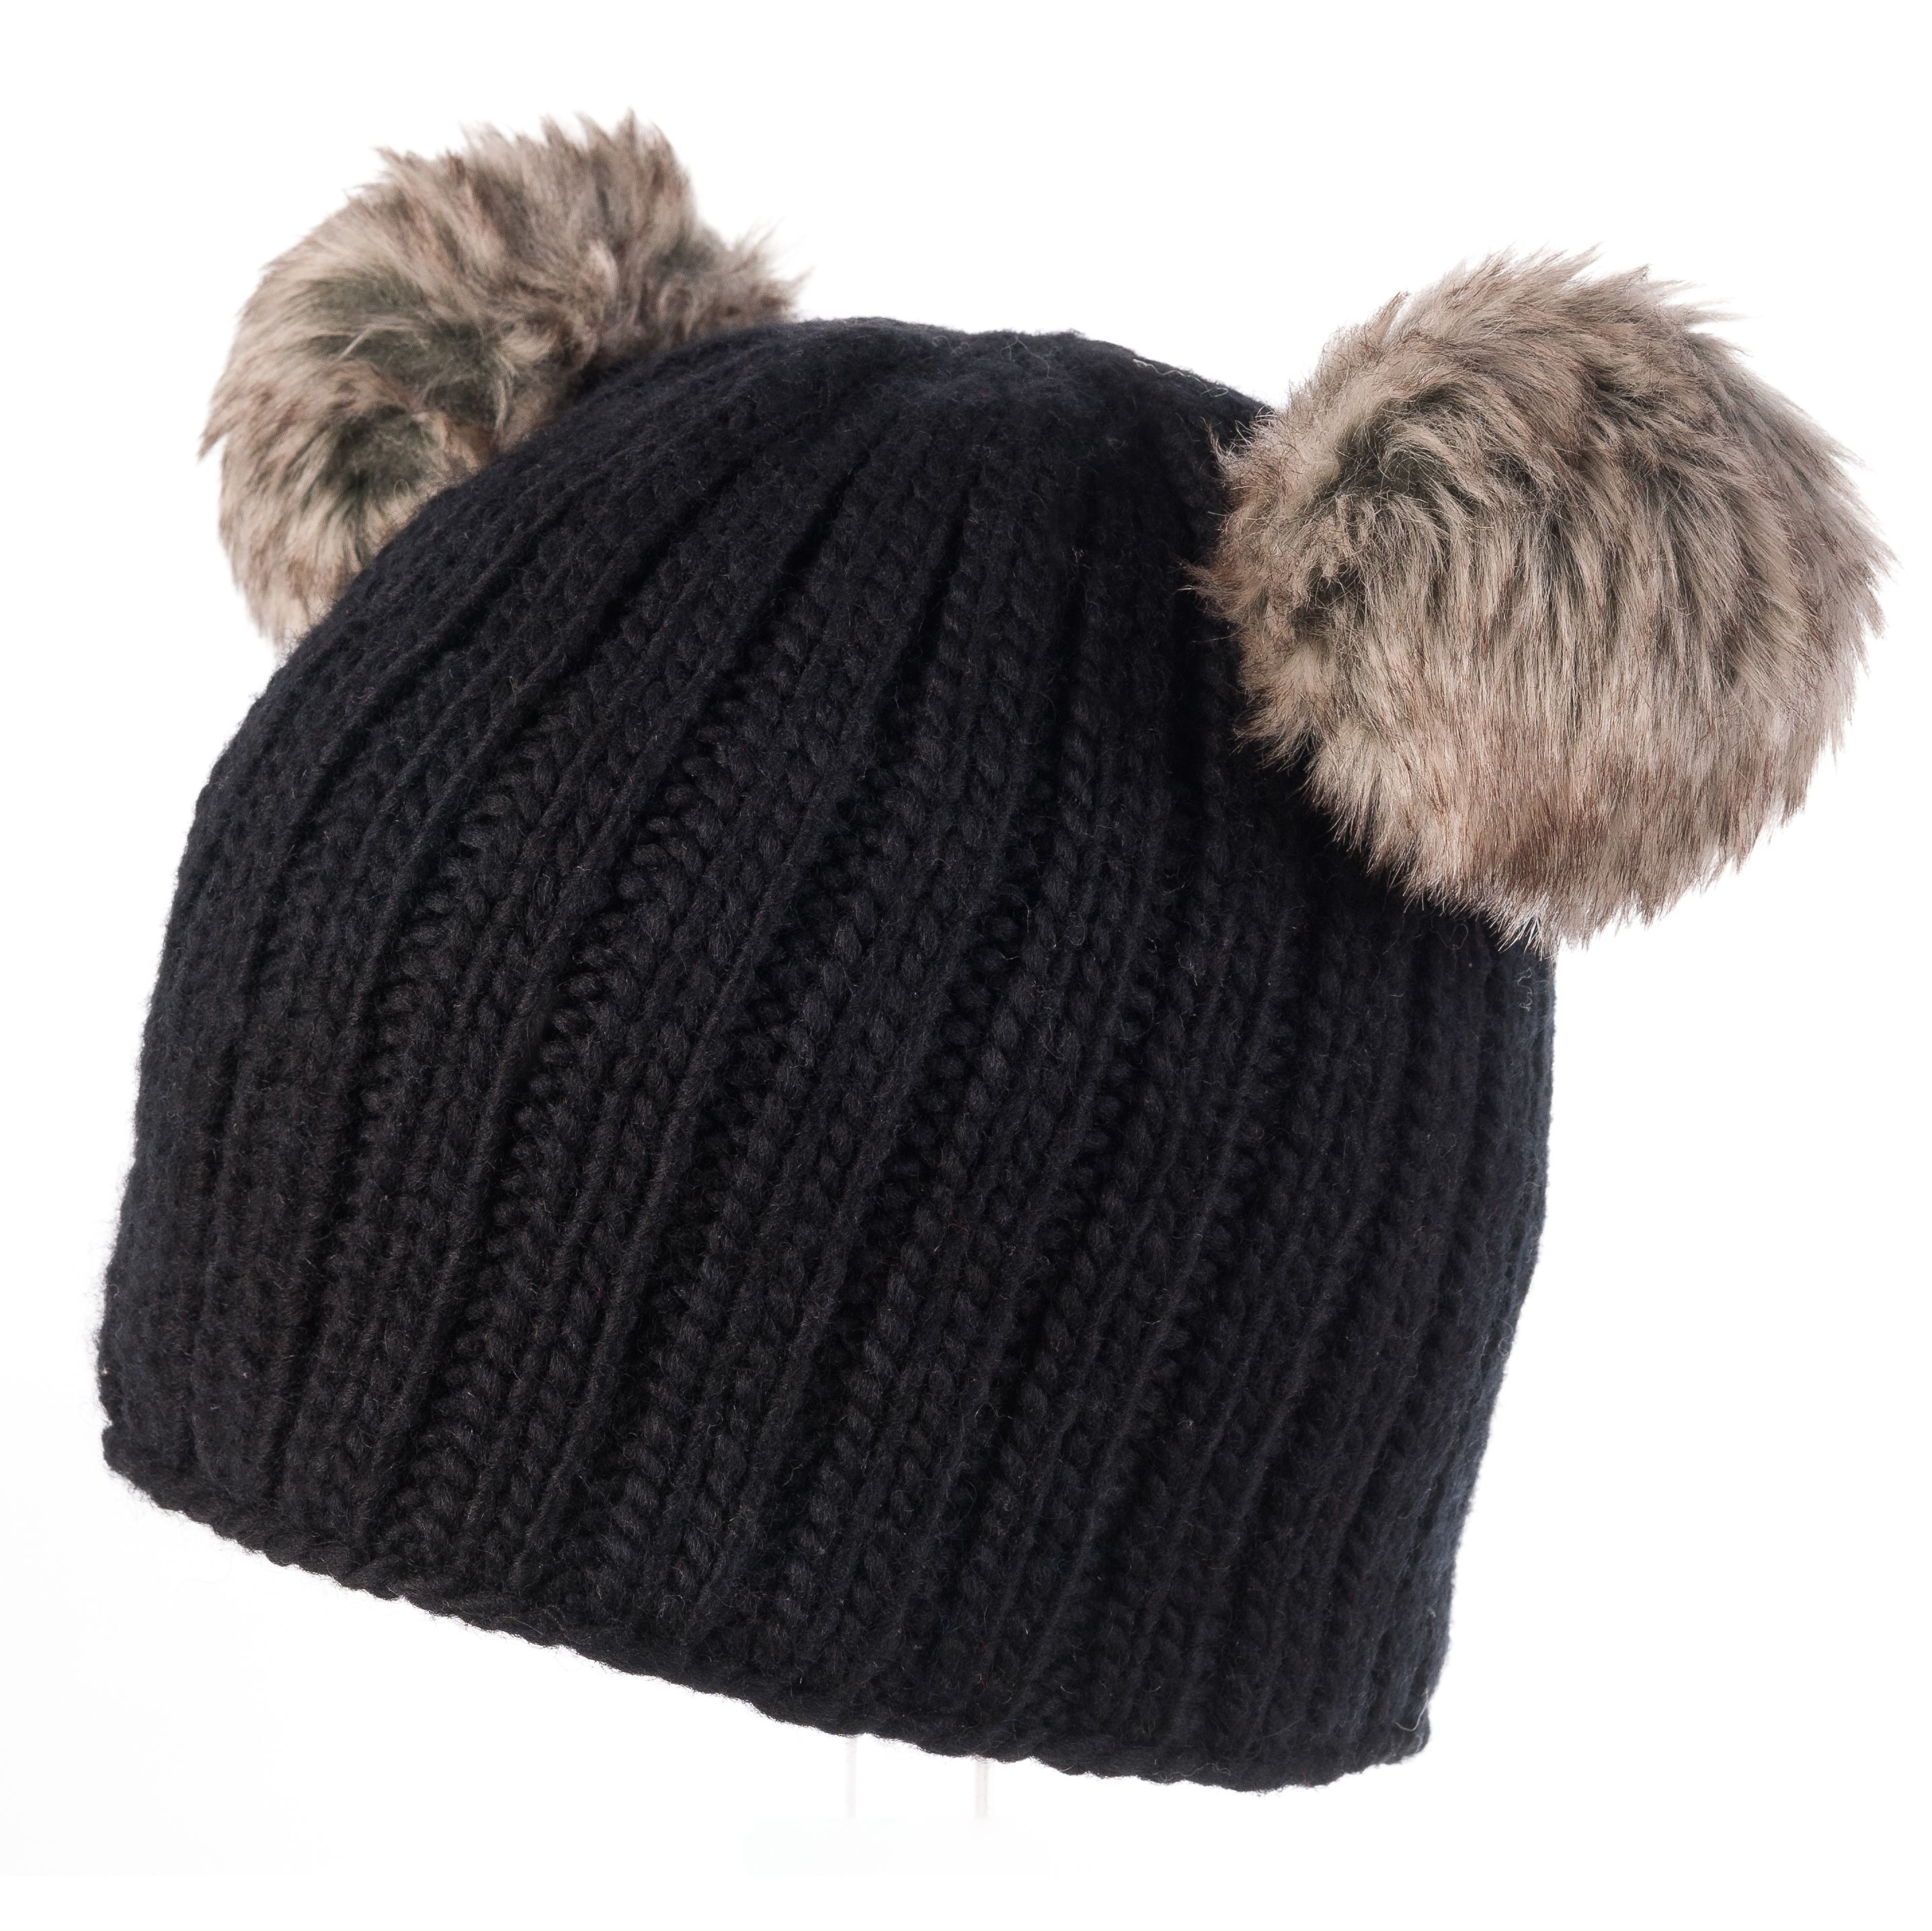 6b35e1ee2ed My winter hat- cute and functional. Double Pom Beanie available in white